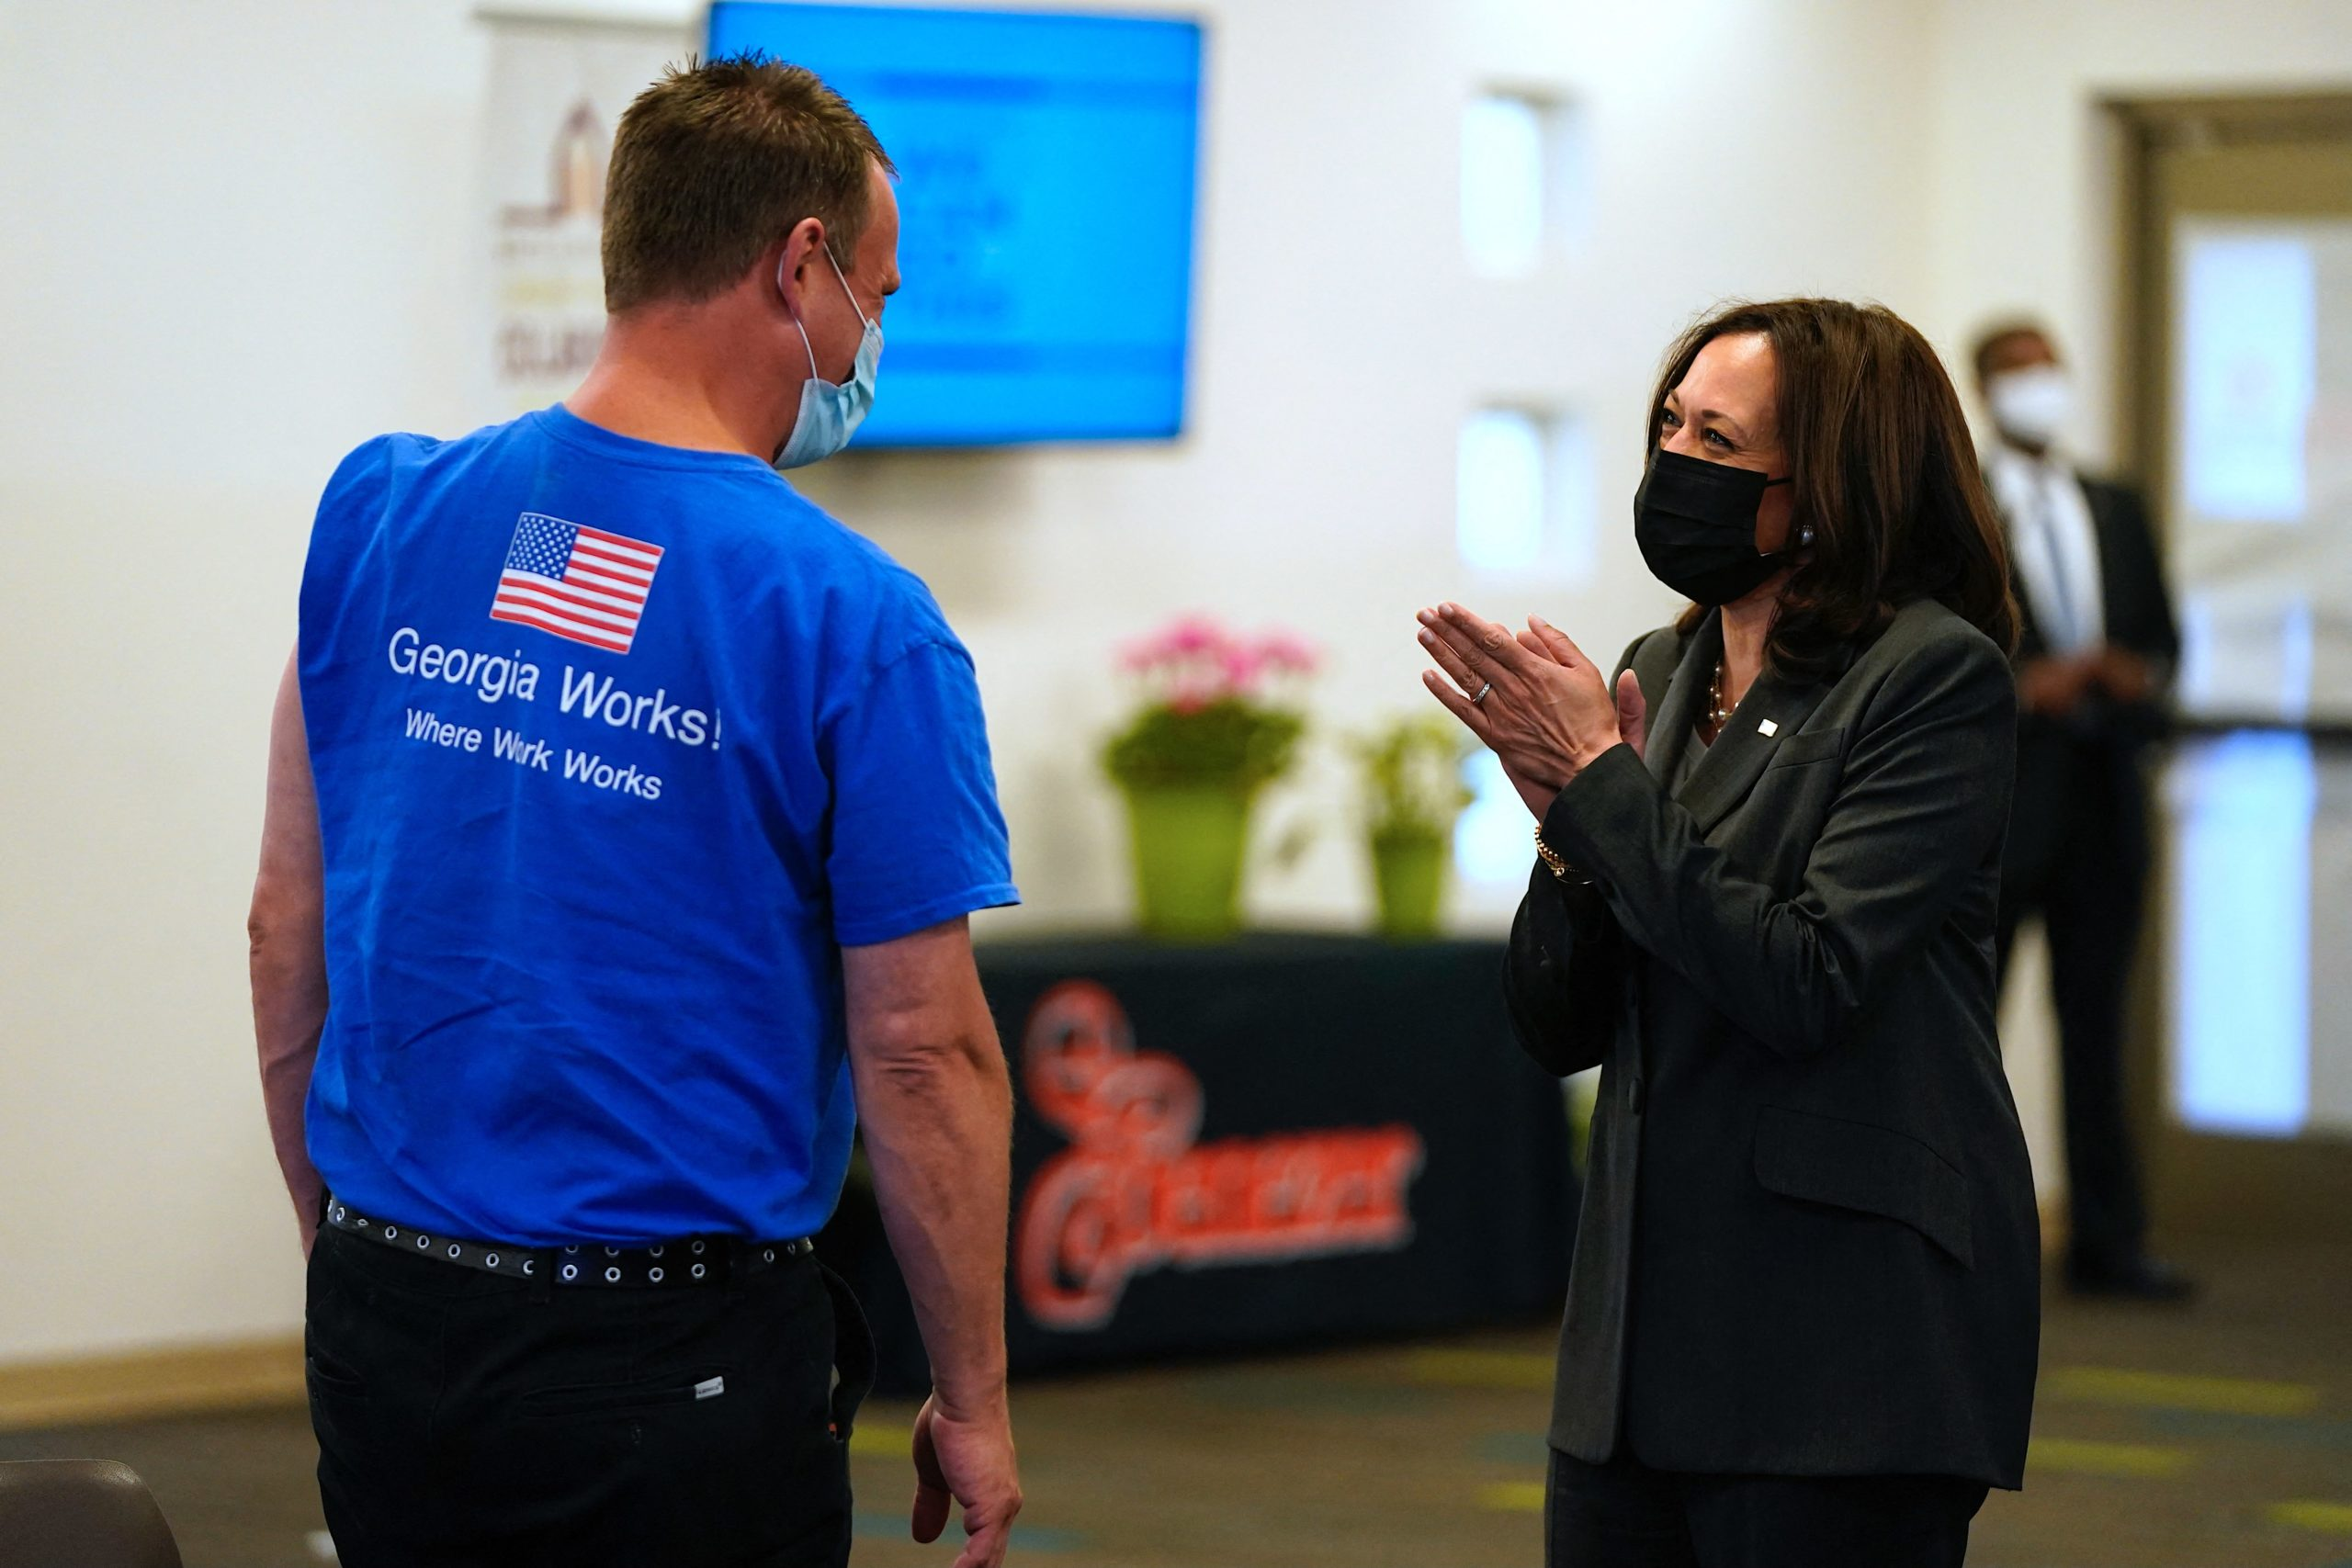 US Vice President Kamala Harris congratulates a man who just received his Covid-19 vaccination as she tours a vaccination clinic at Ebenezer Baptist Church in Atlanta, Georgia, on June 18, 2021. (ALEX EDELMAN/AFP via Getty Images)